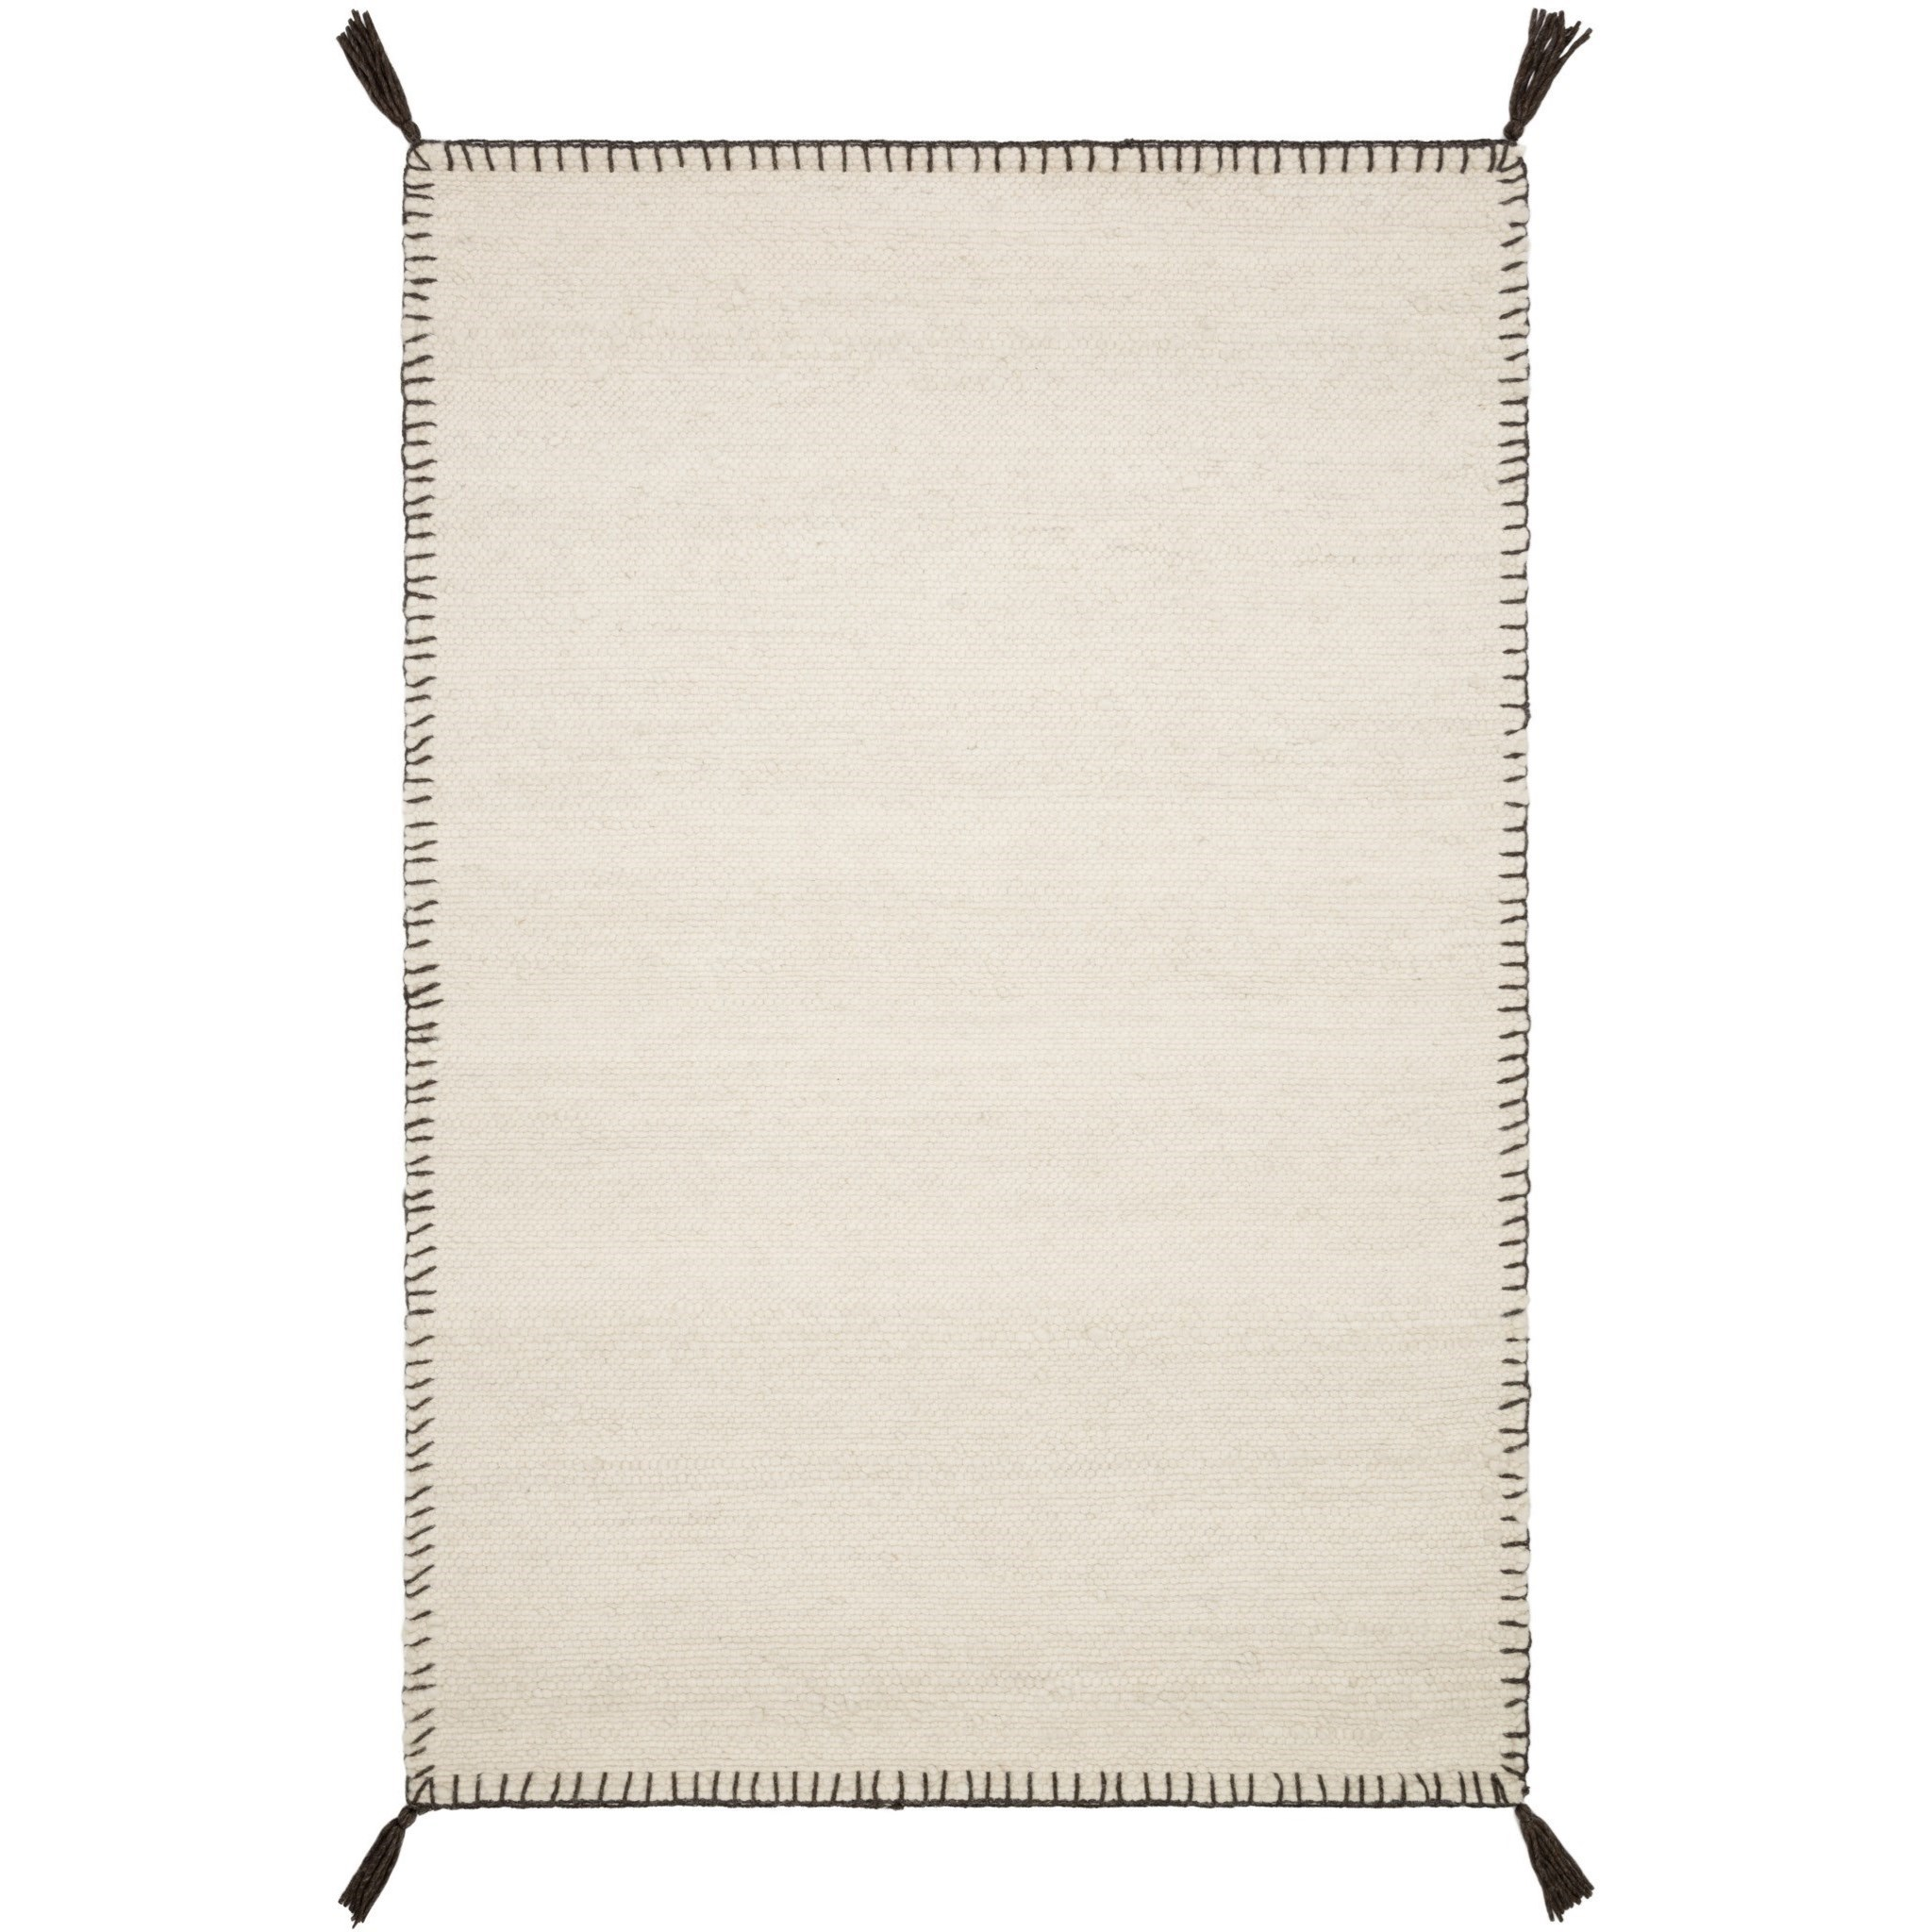 "Oakdell 9'-3"" X 13' Rug by ED Ellen DeGeneres Crafted by Loloi at Belfort Furniture"